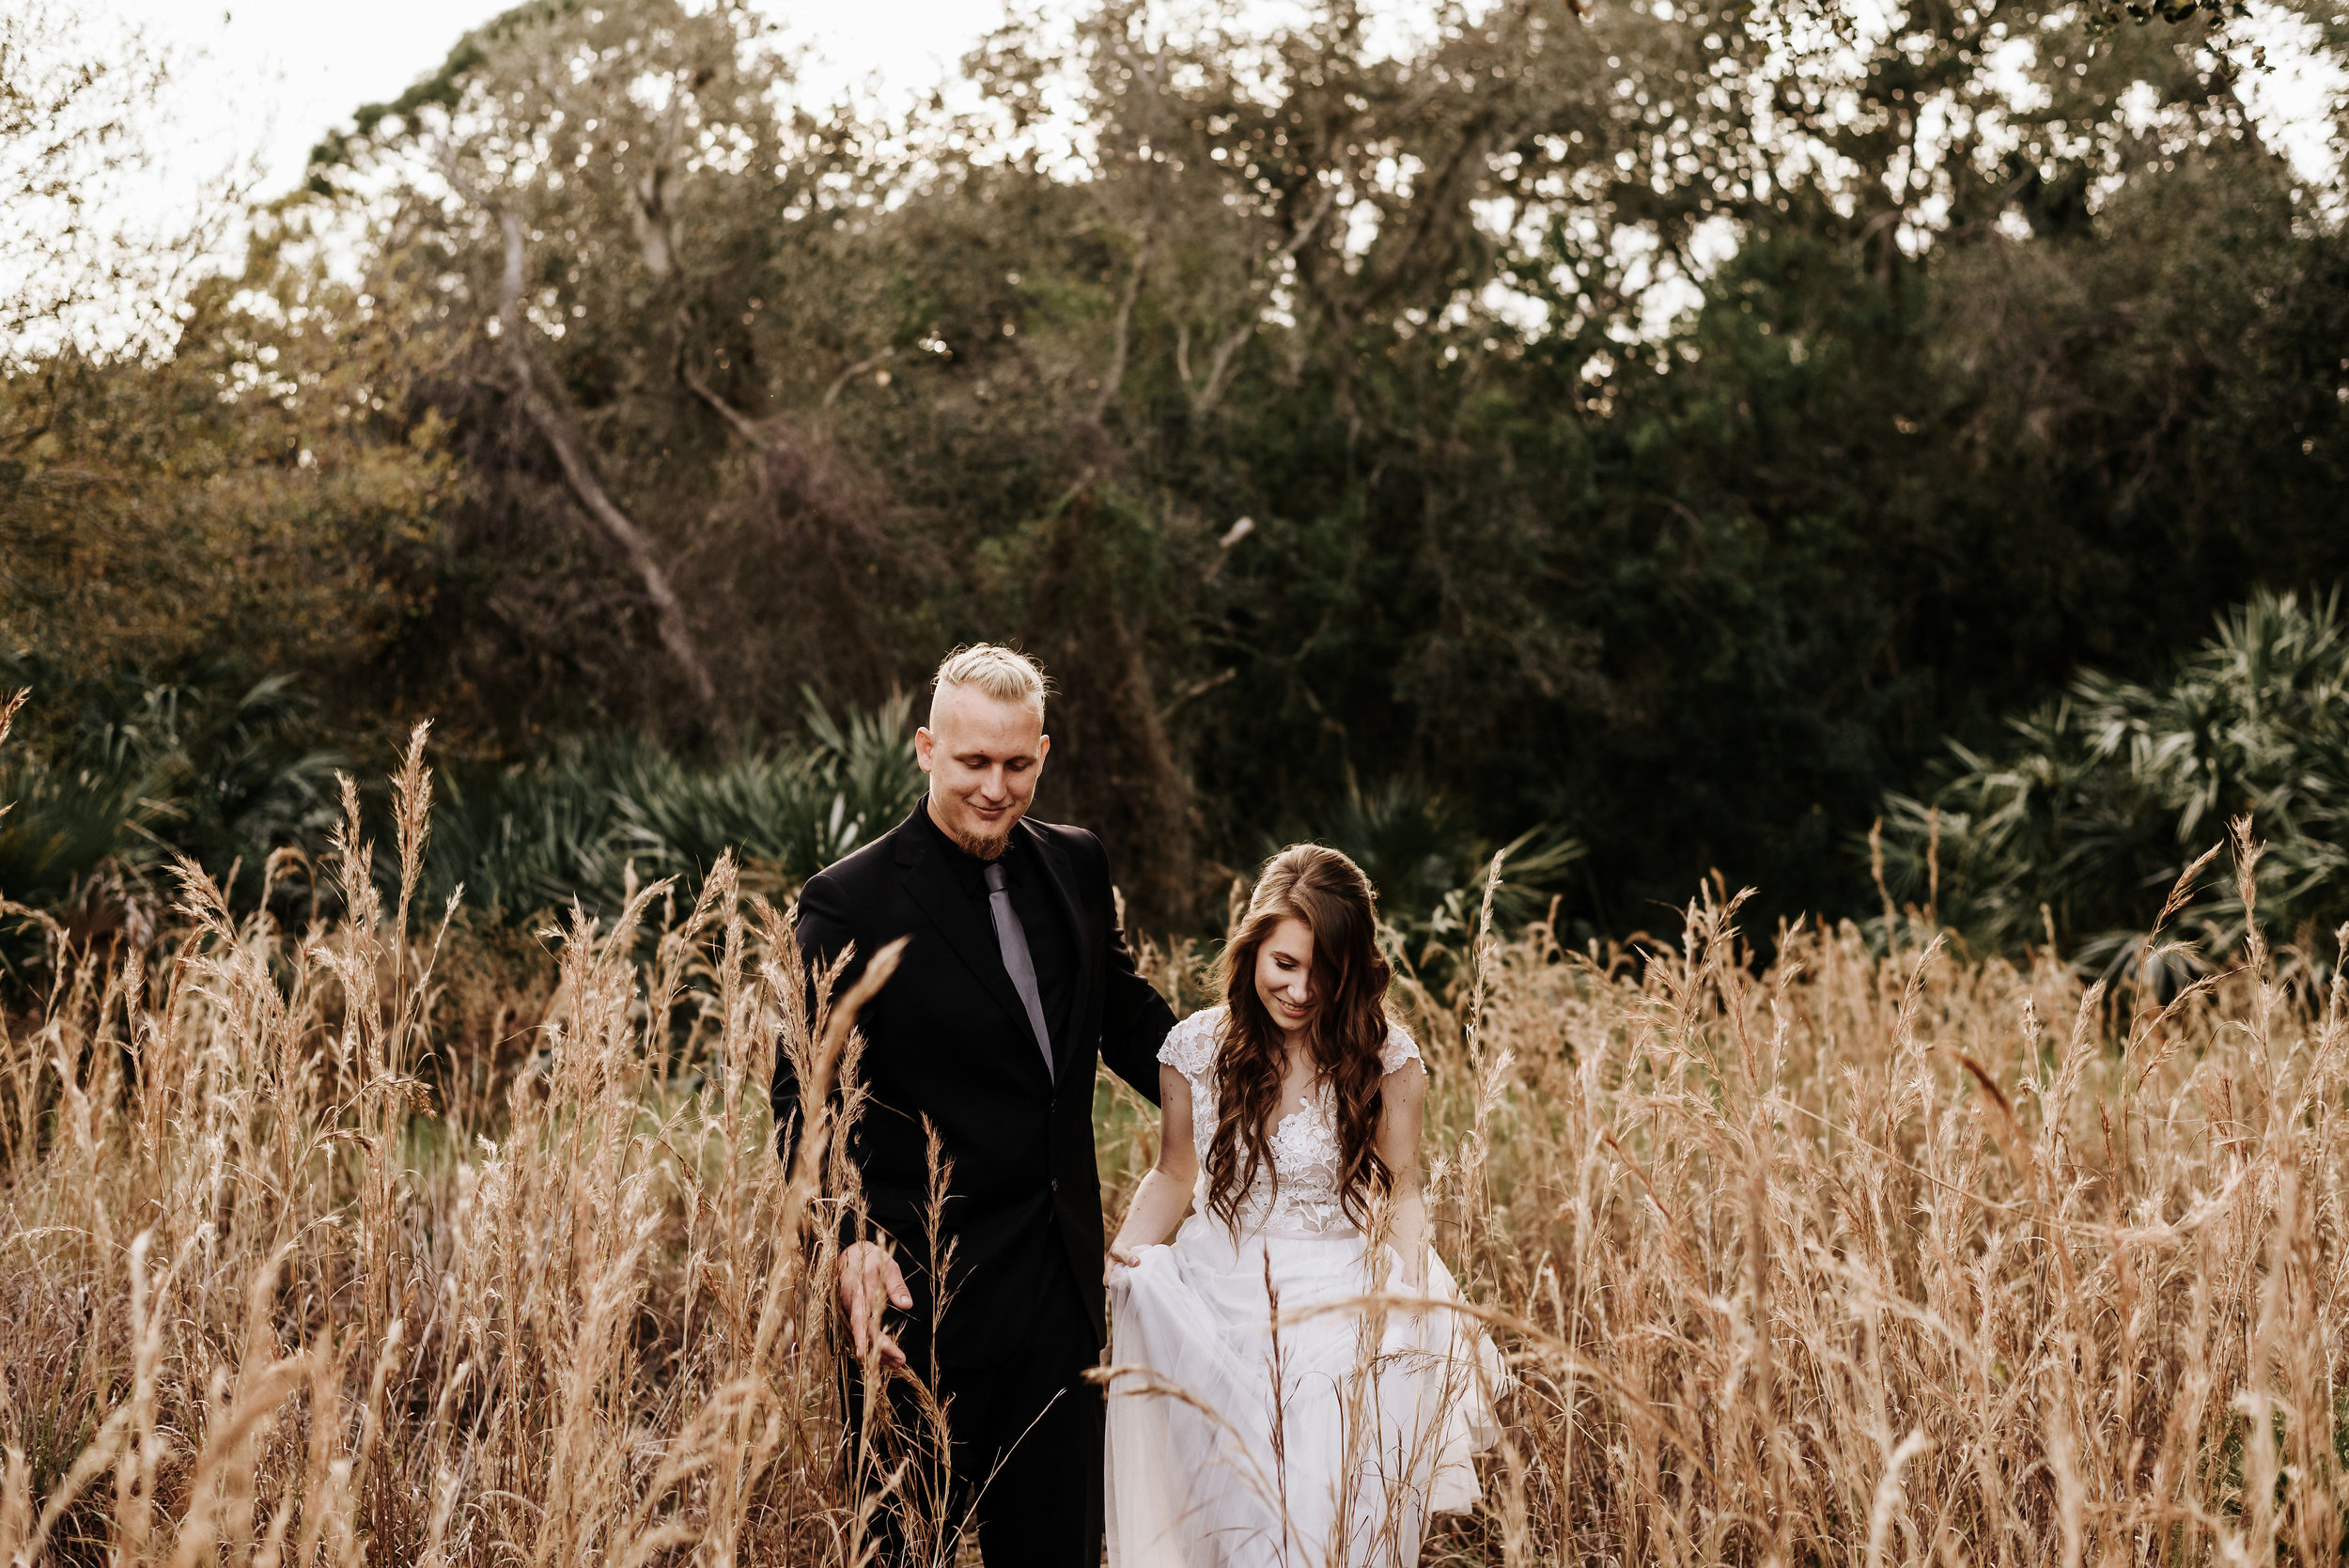 Jess_Micah_Portrait_Session_Wedding_Vero_Beach_Florida_Photography_by_V_0187.jpg